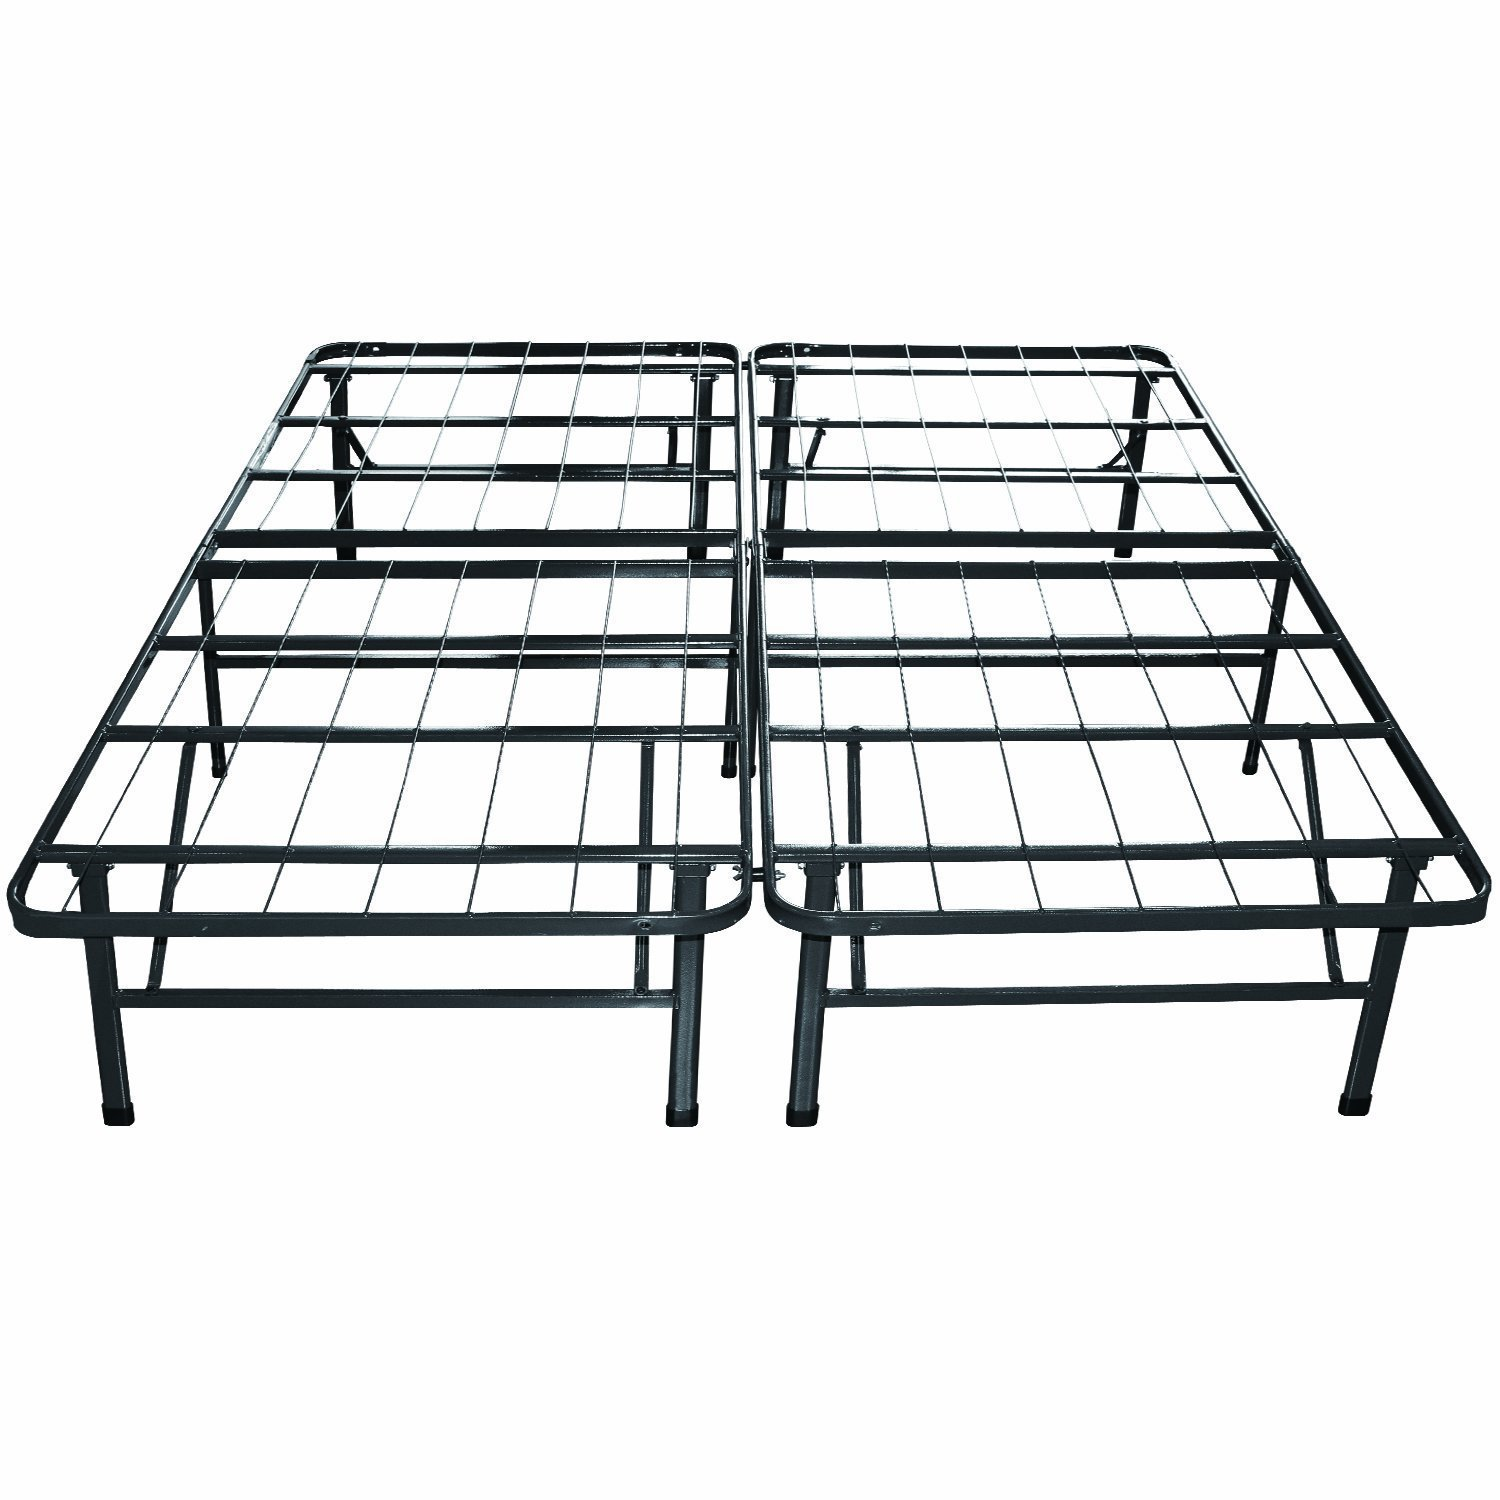 Contemporary king size metal bed frame amazon.com: classic brands hercules heavy-duty 14-inch platform metal bed  frame | mattress fexohpr